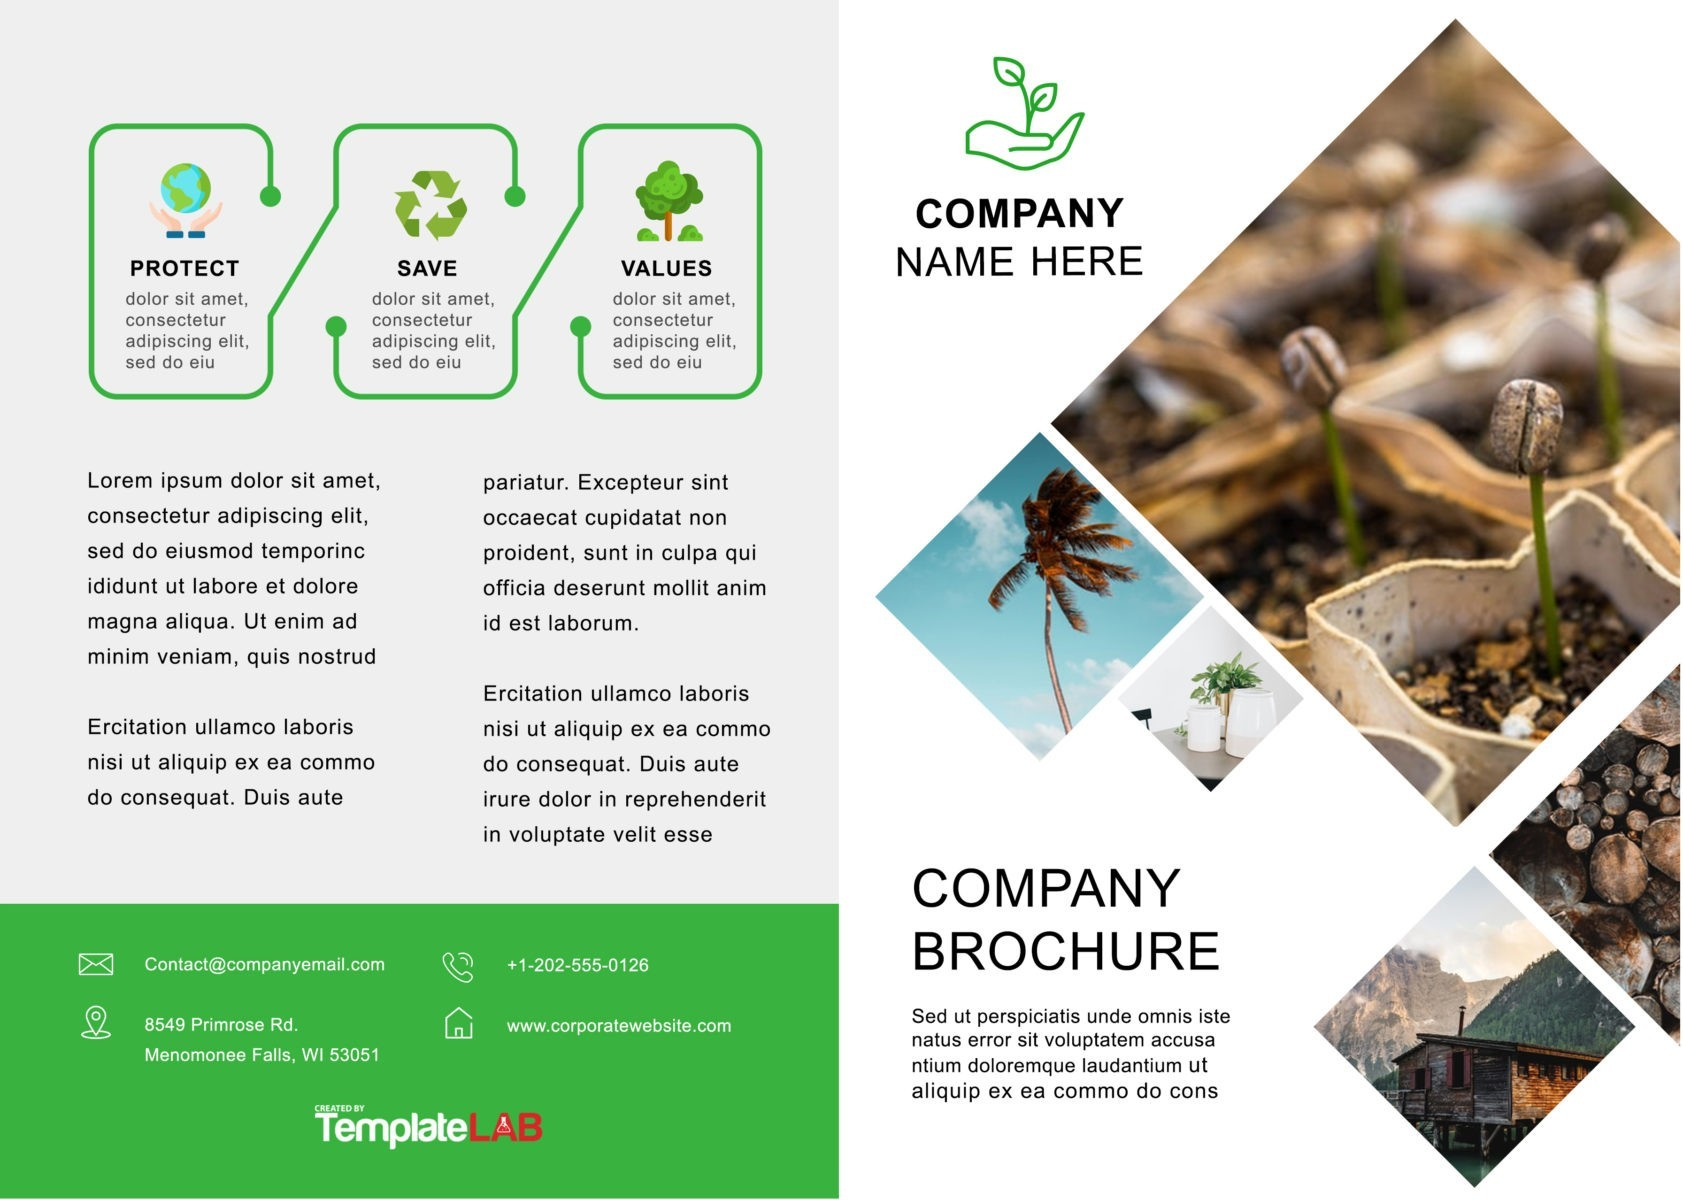 Download Brochure Template Word from templatelab.com